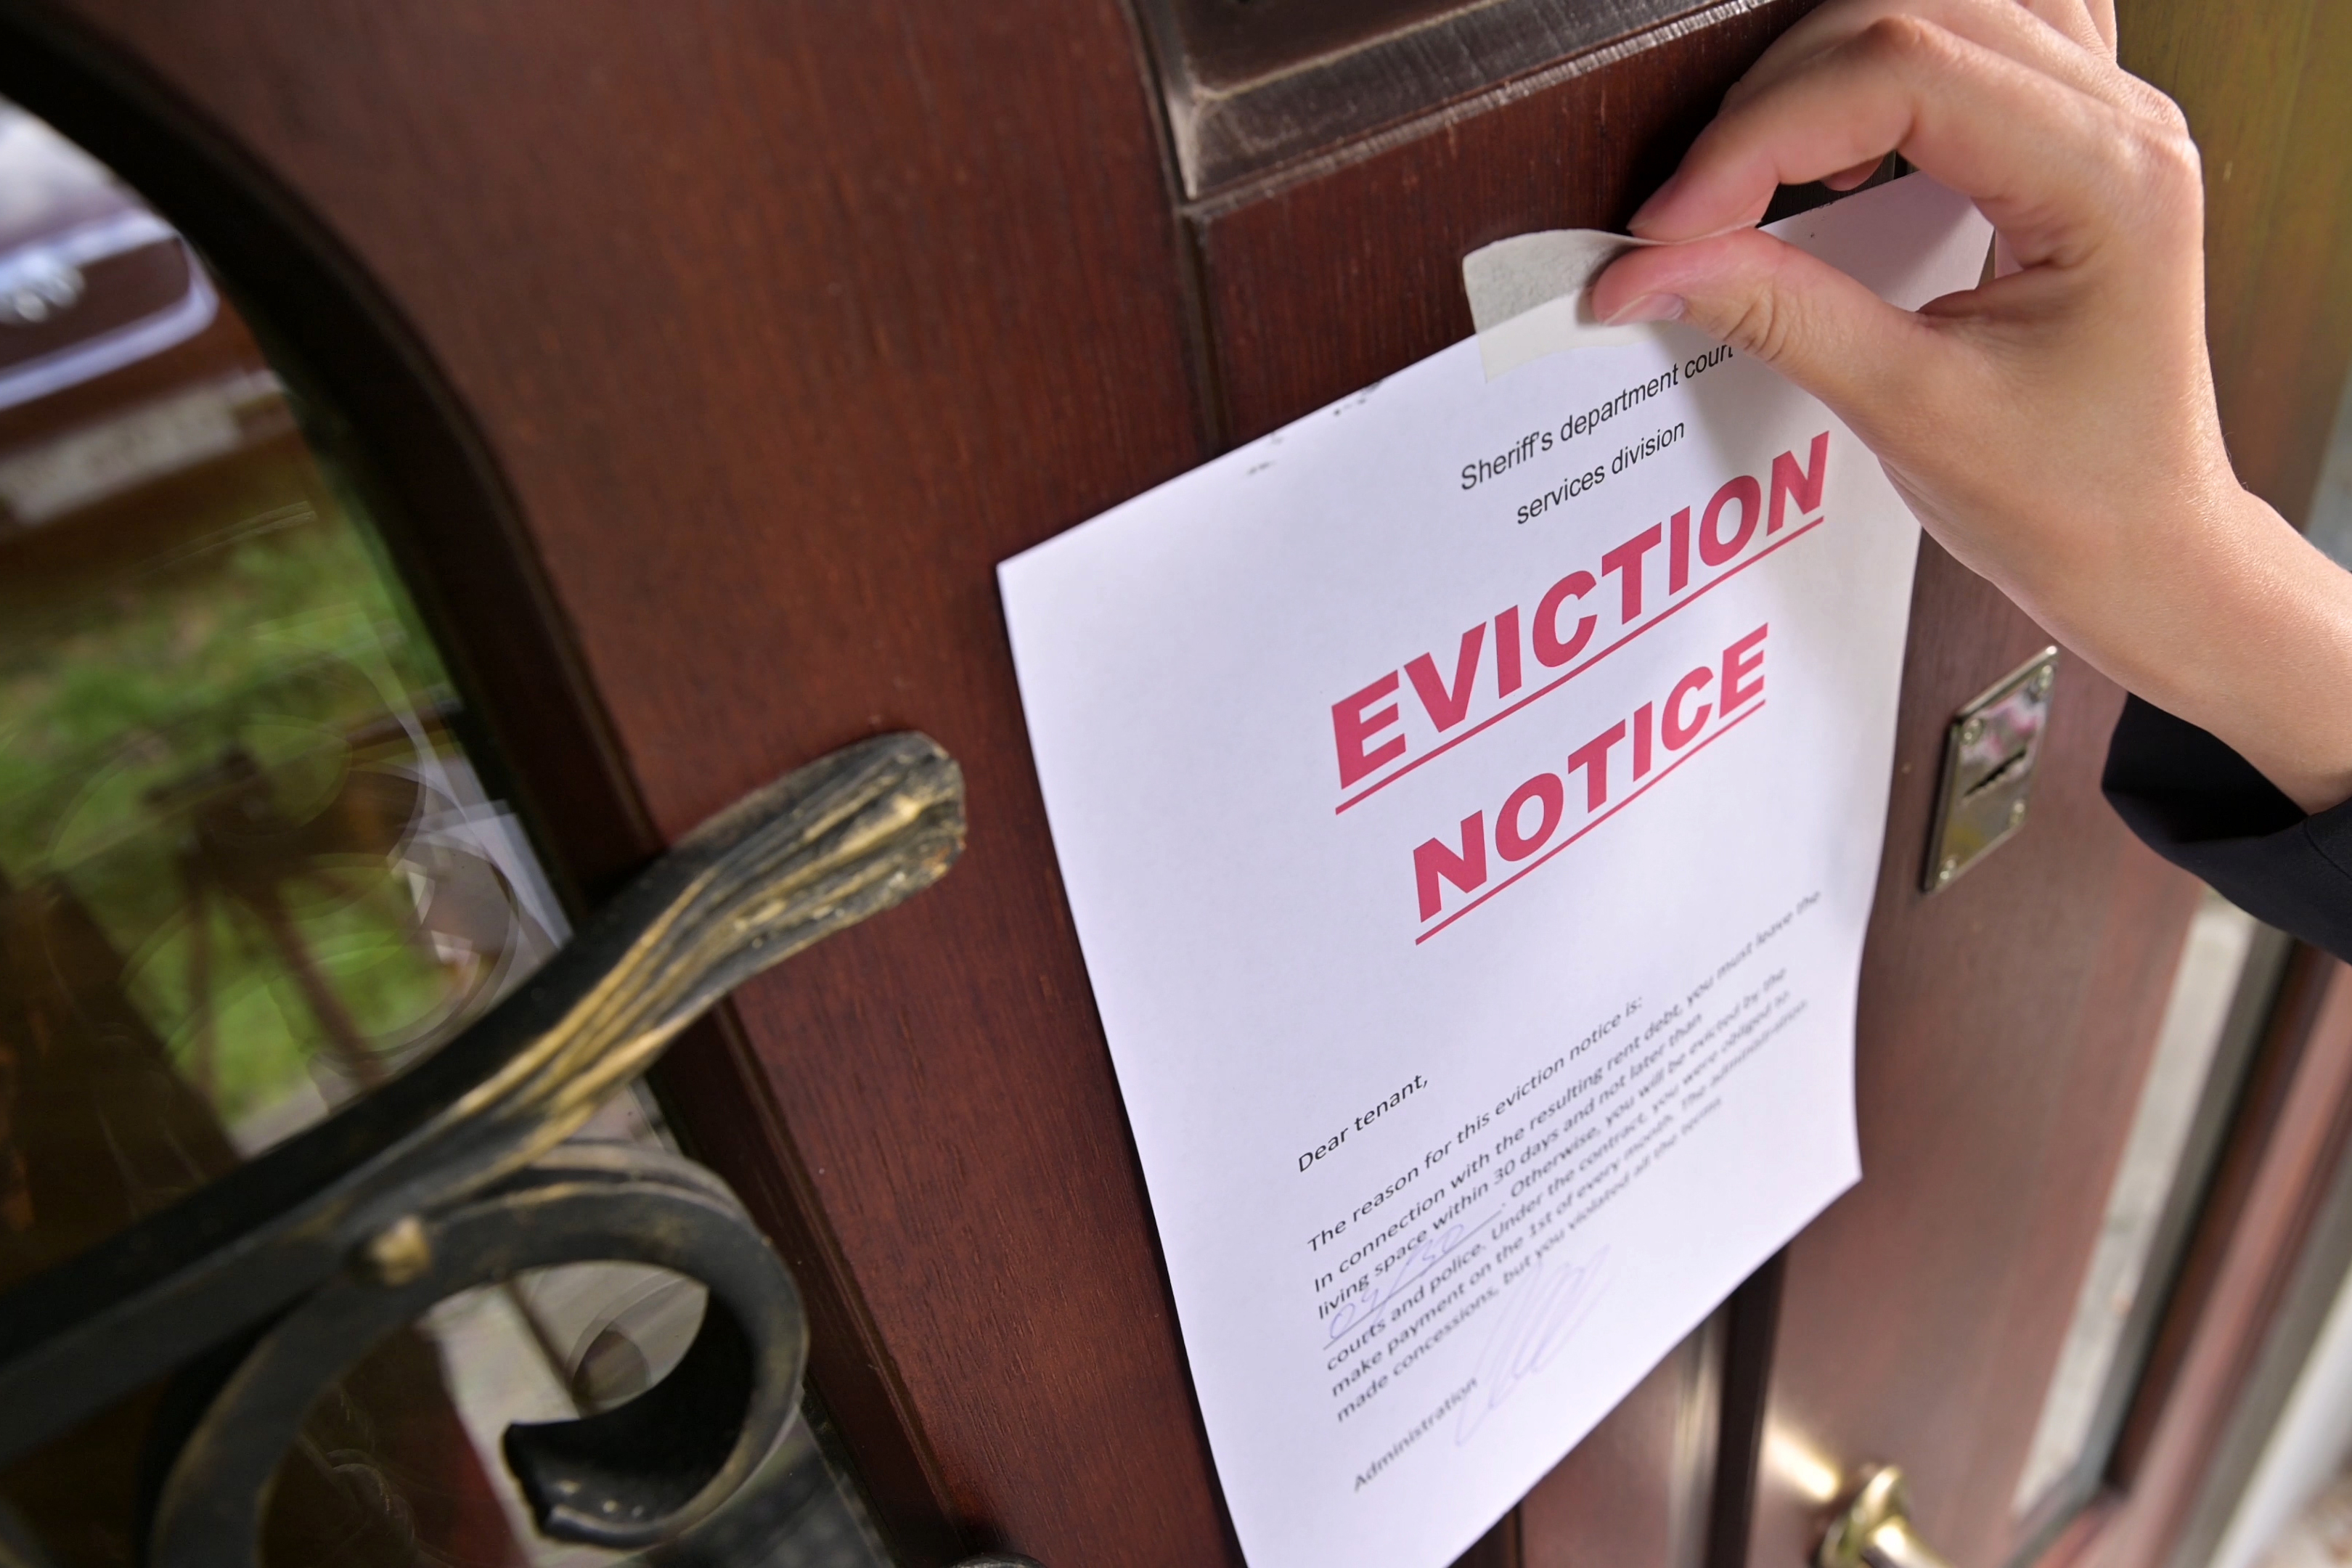 eviction-notice-front-door-avoiding-eviction-finding-alternative-housing